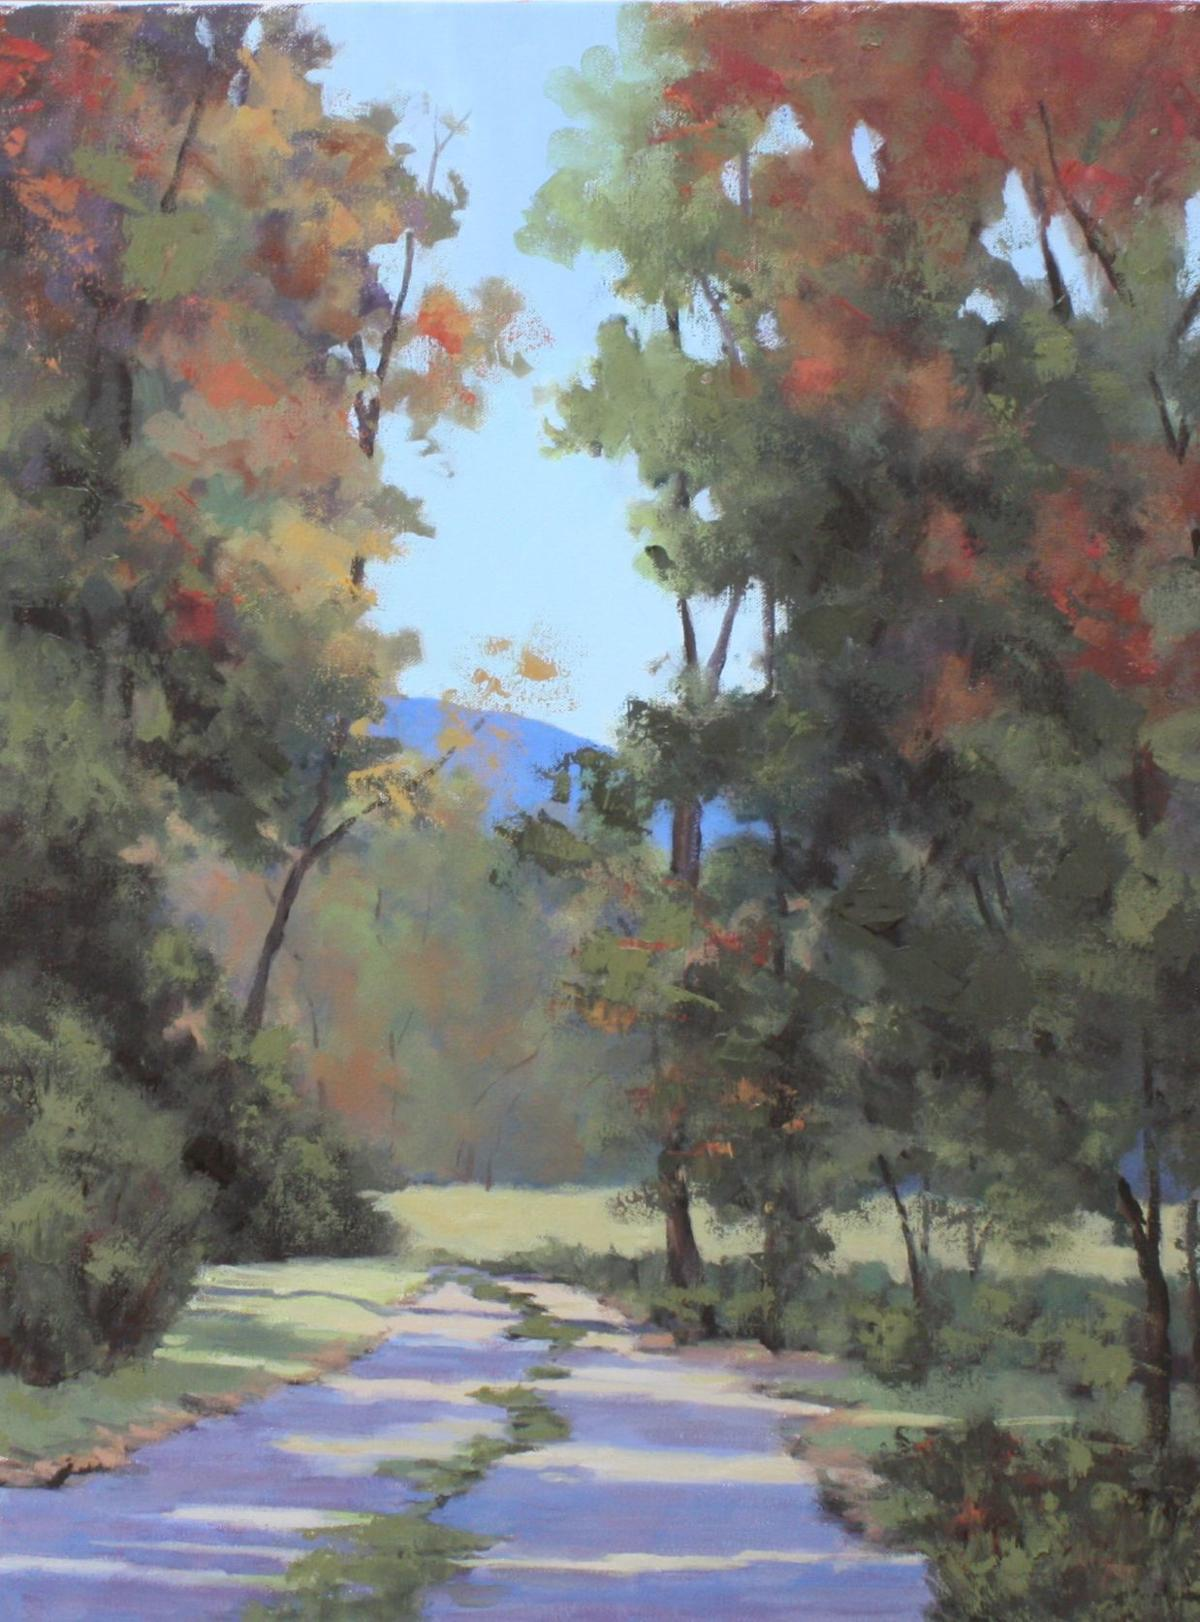 'A Walk in the Mountains' (22 x 28) in oil by Sheila Hancock at Alta Vista Gallery.